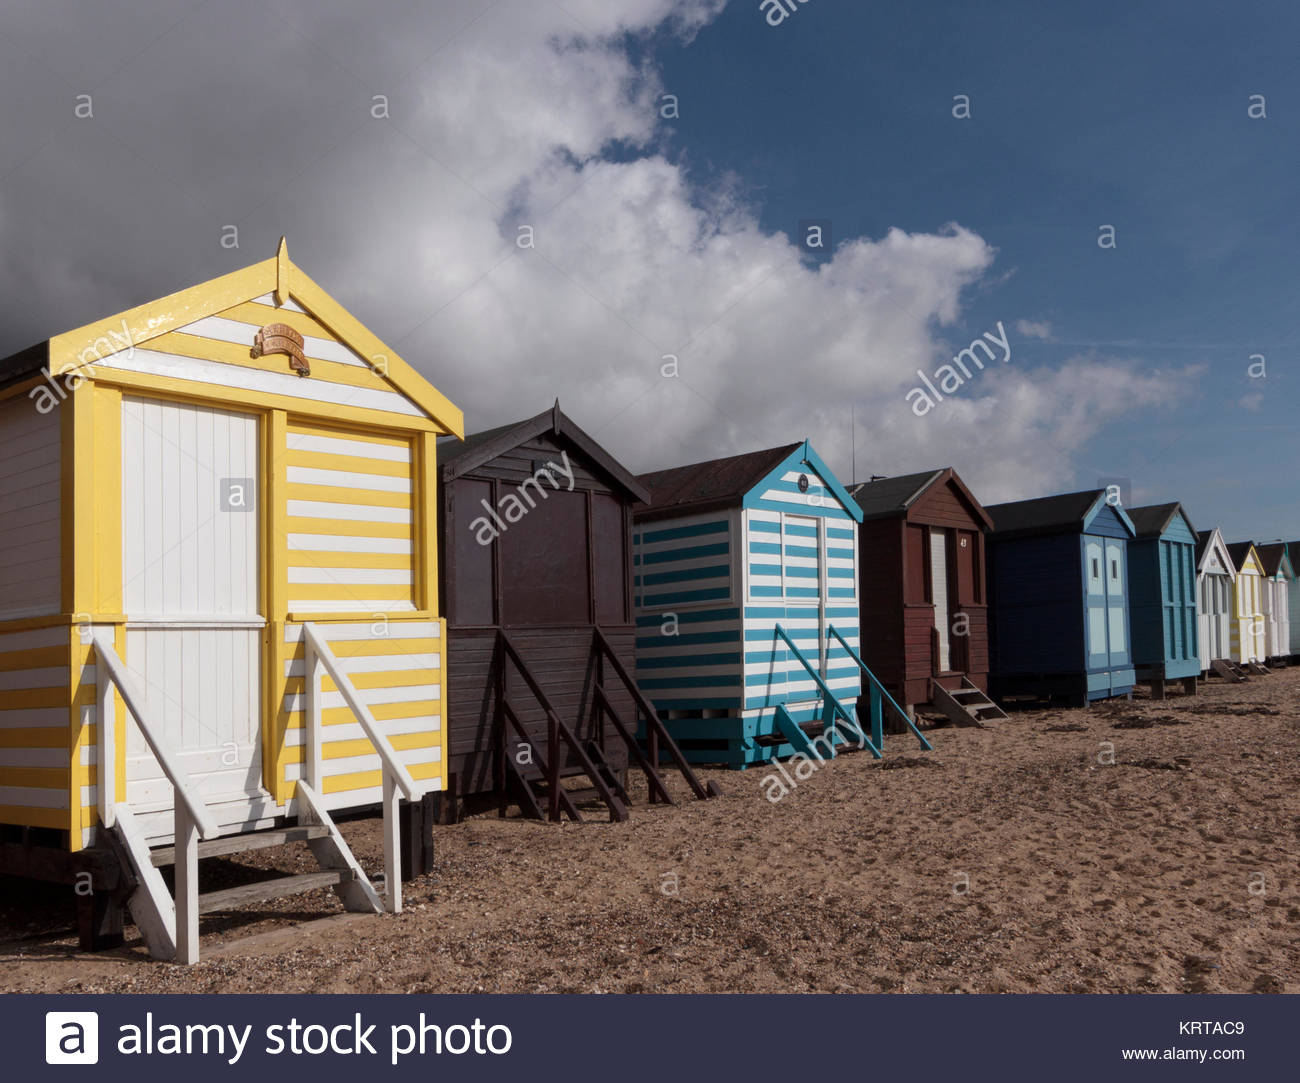 A row of beach huts in Thorpe Bay, Southend-On-Sea. Stock Photo